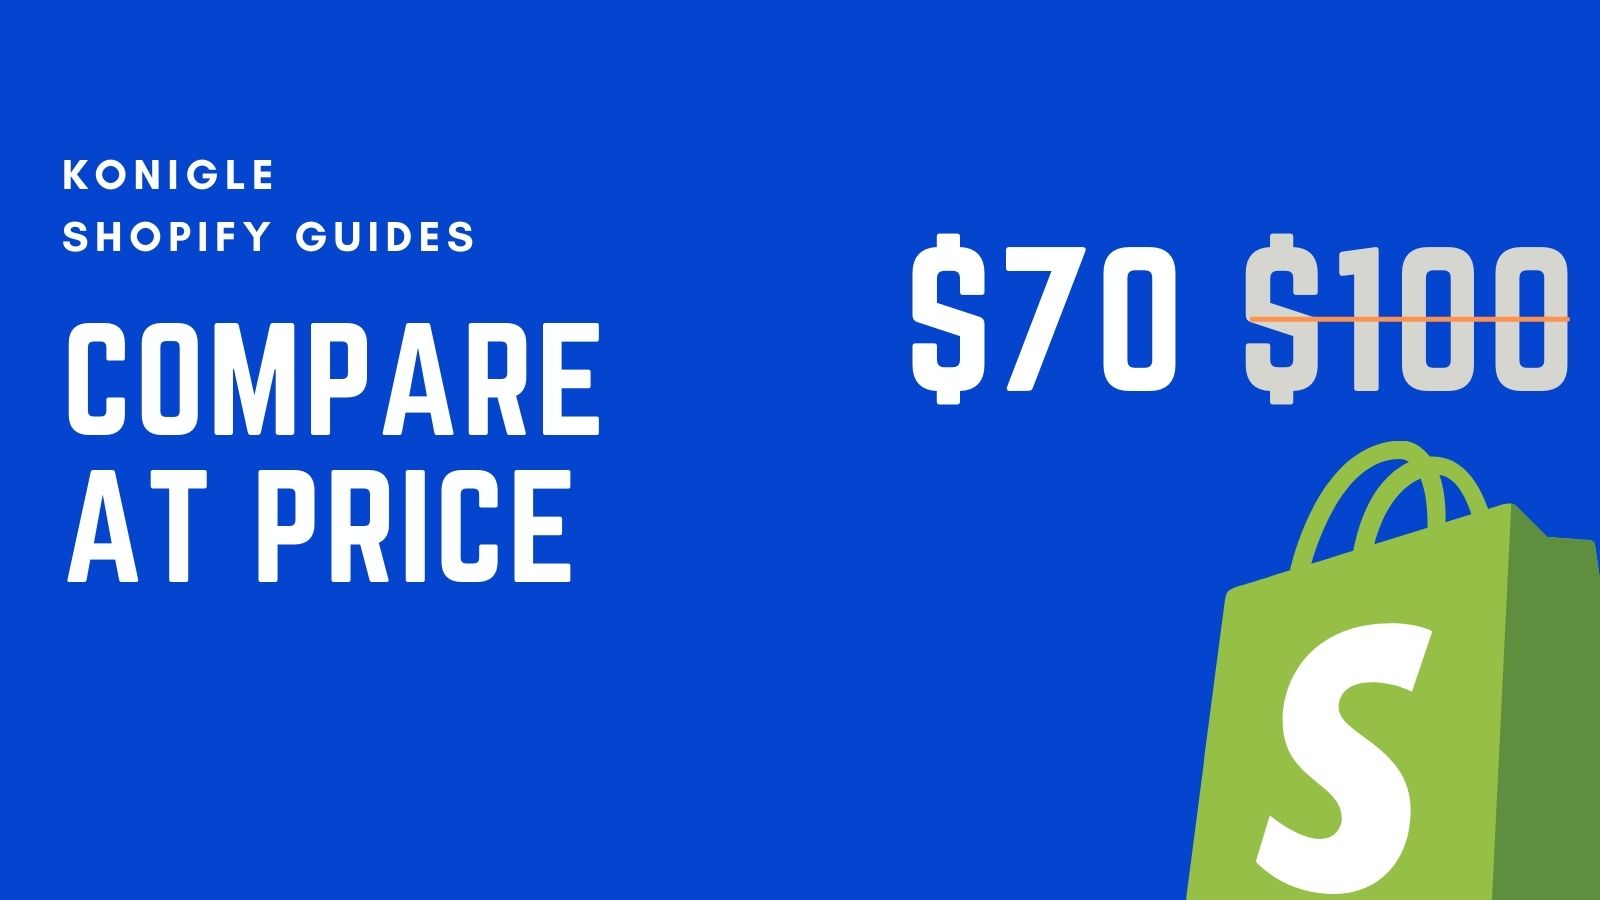 How to use compare at price effectively in Shopify?